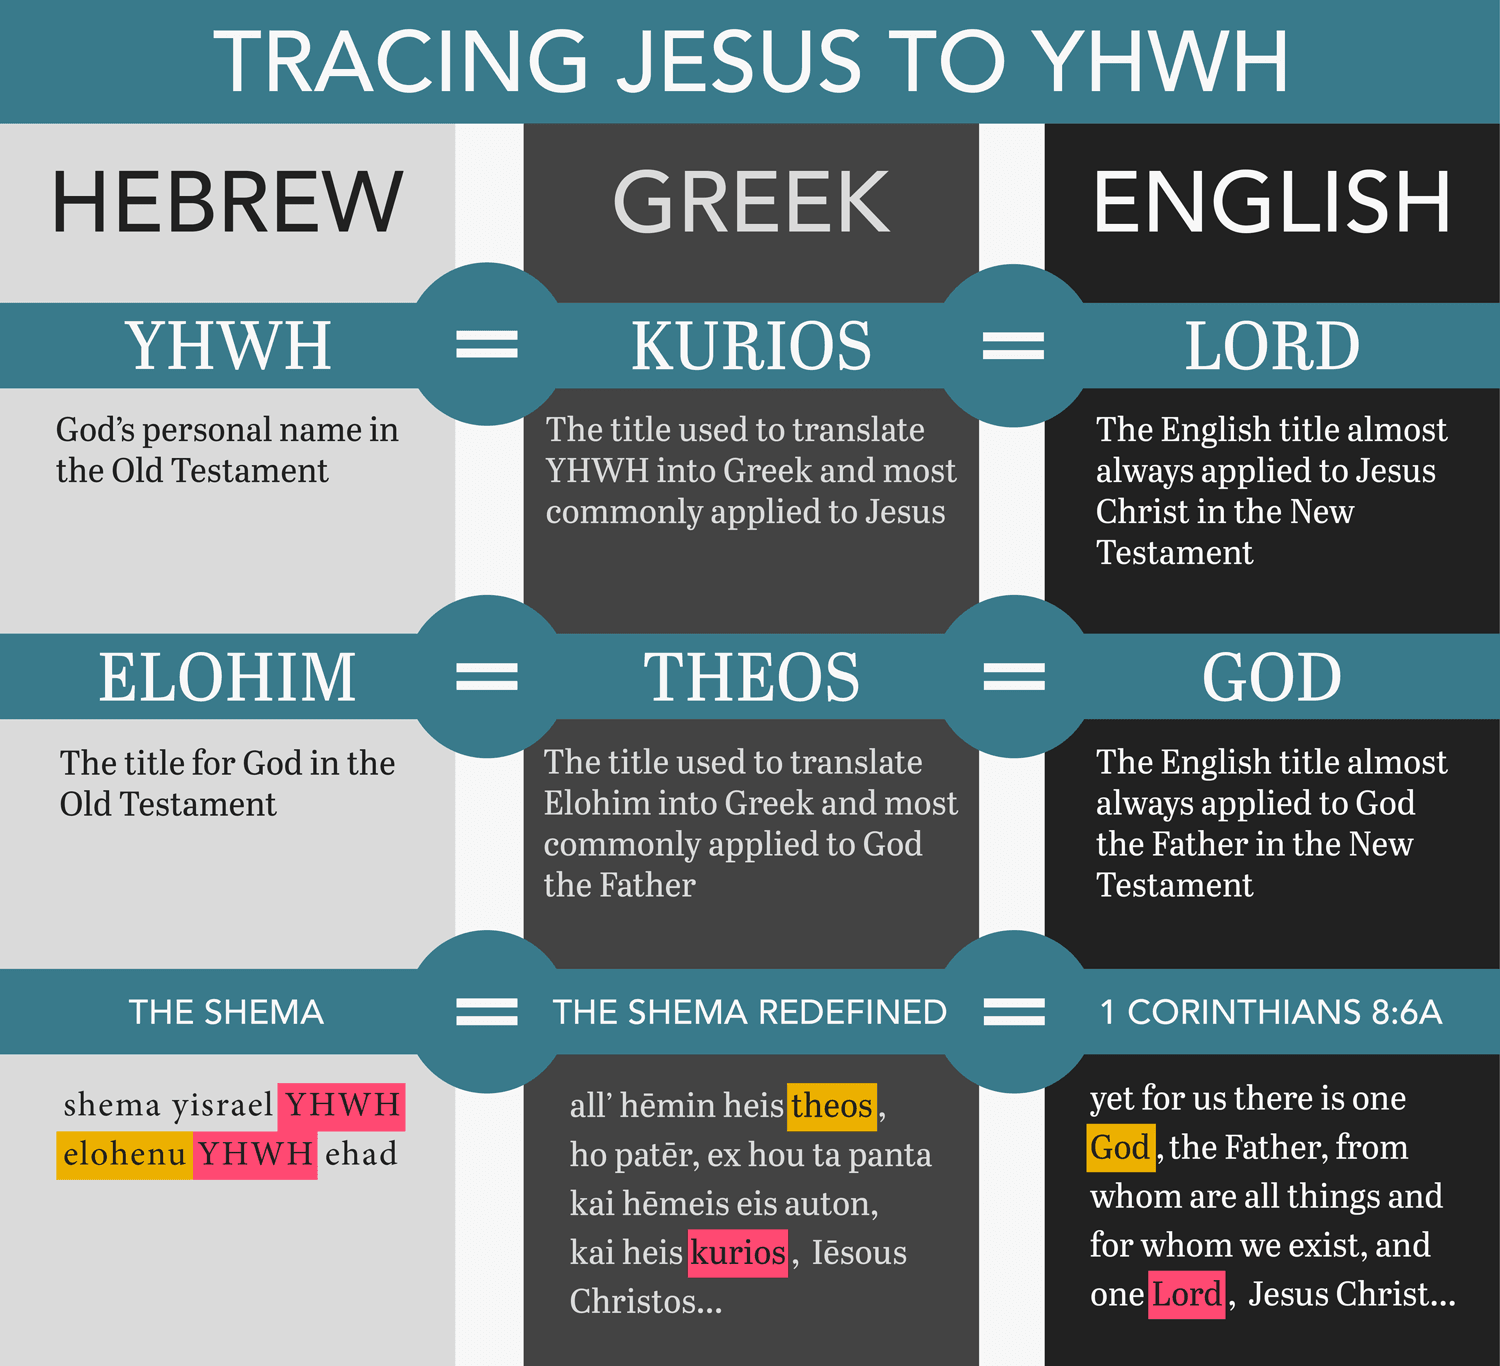 Tracing Jesus to YHWH